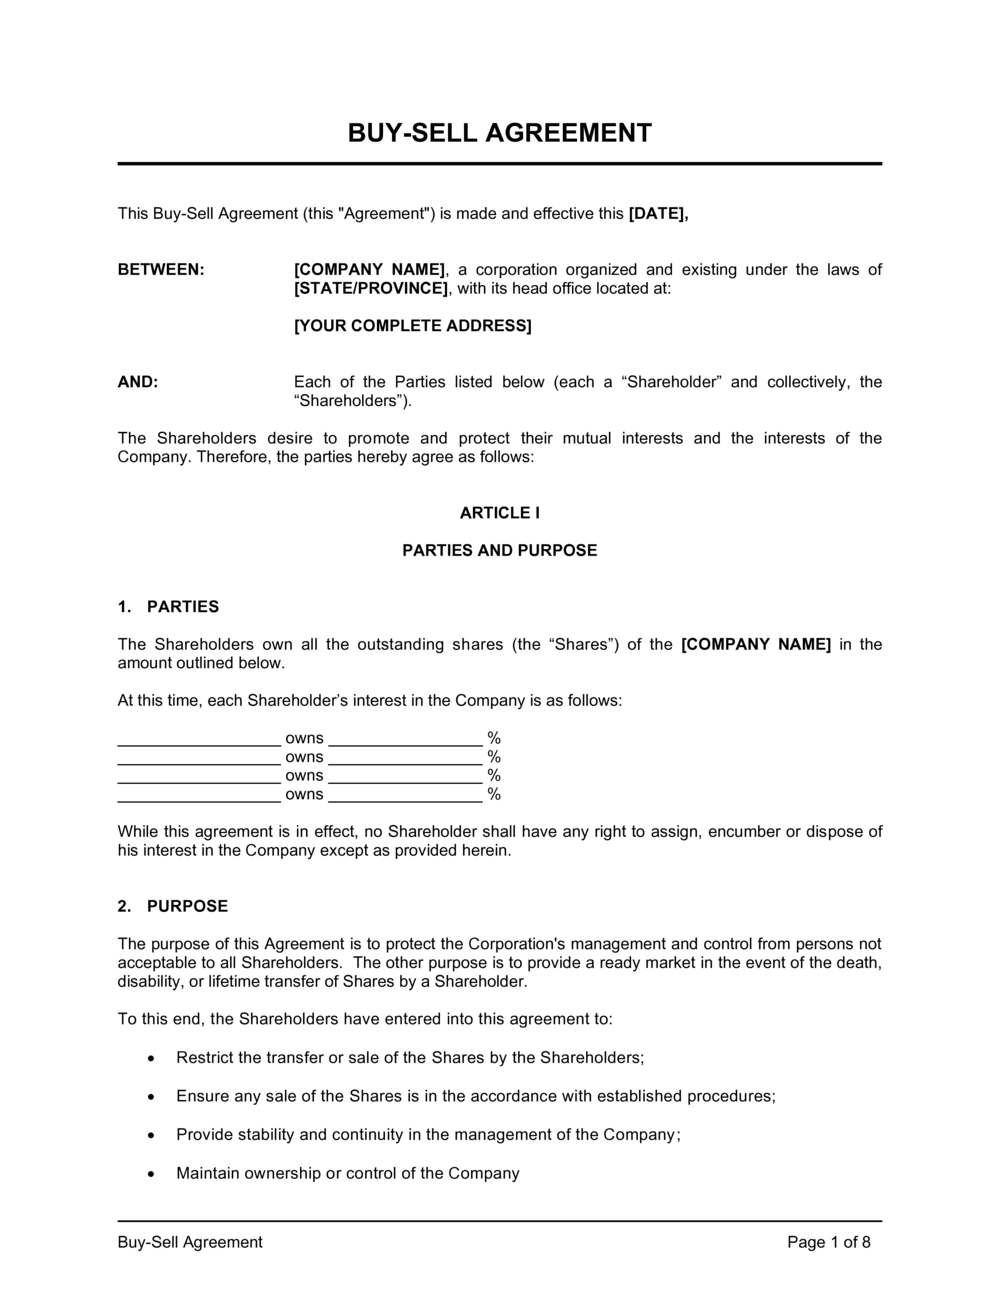 Business-in-a-Box's Buy Sell Agreement Template